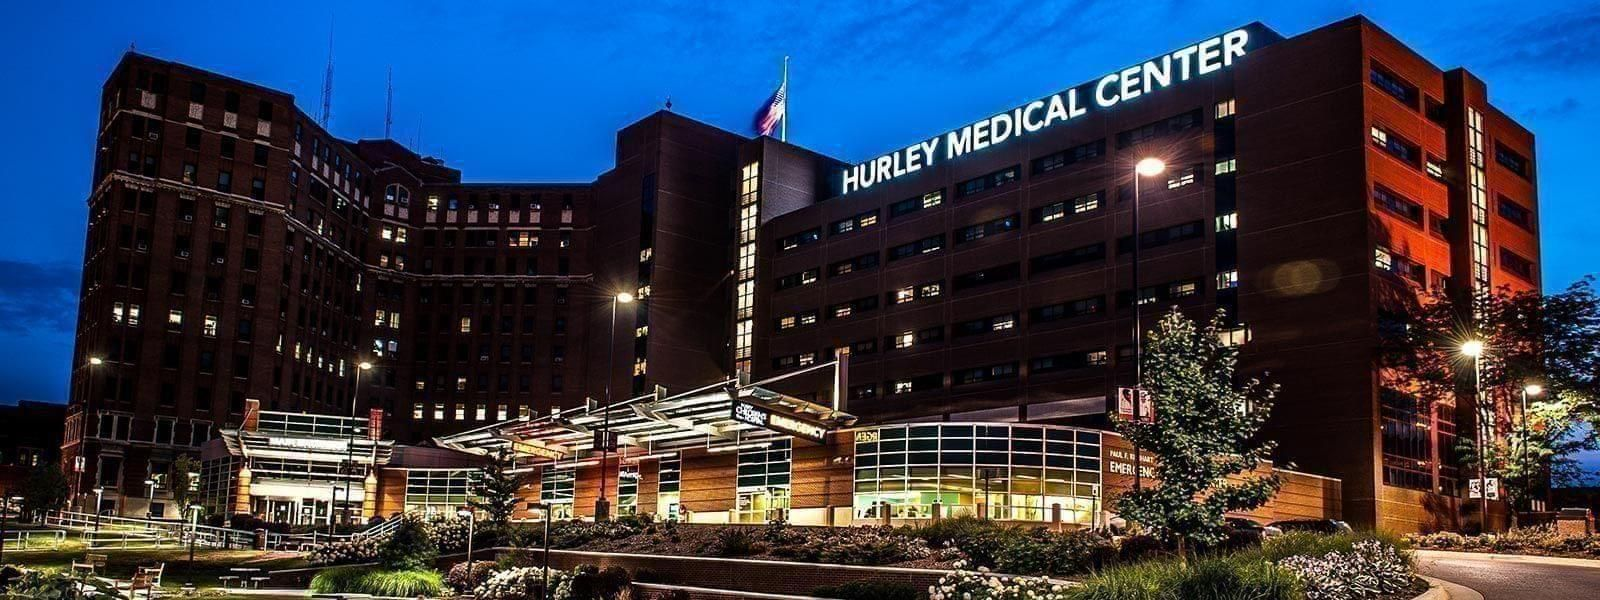 Hurley Medical Center About Us